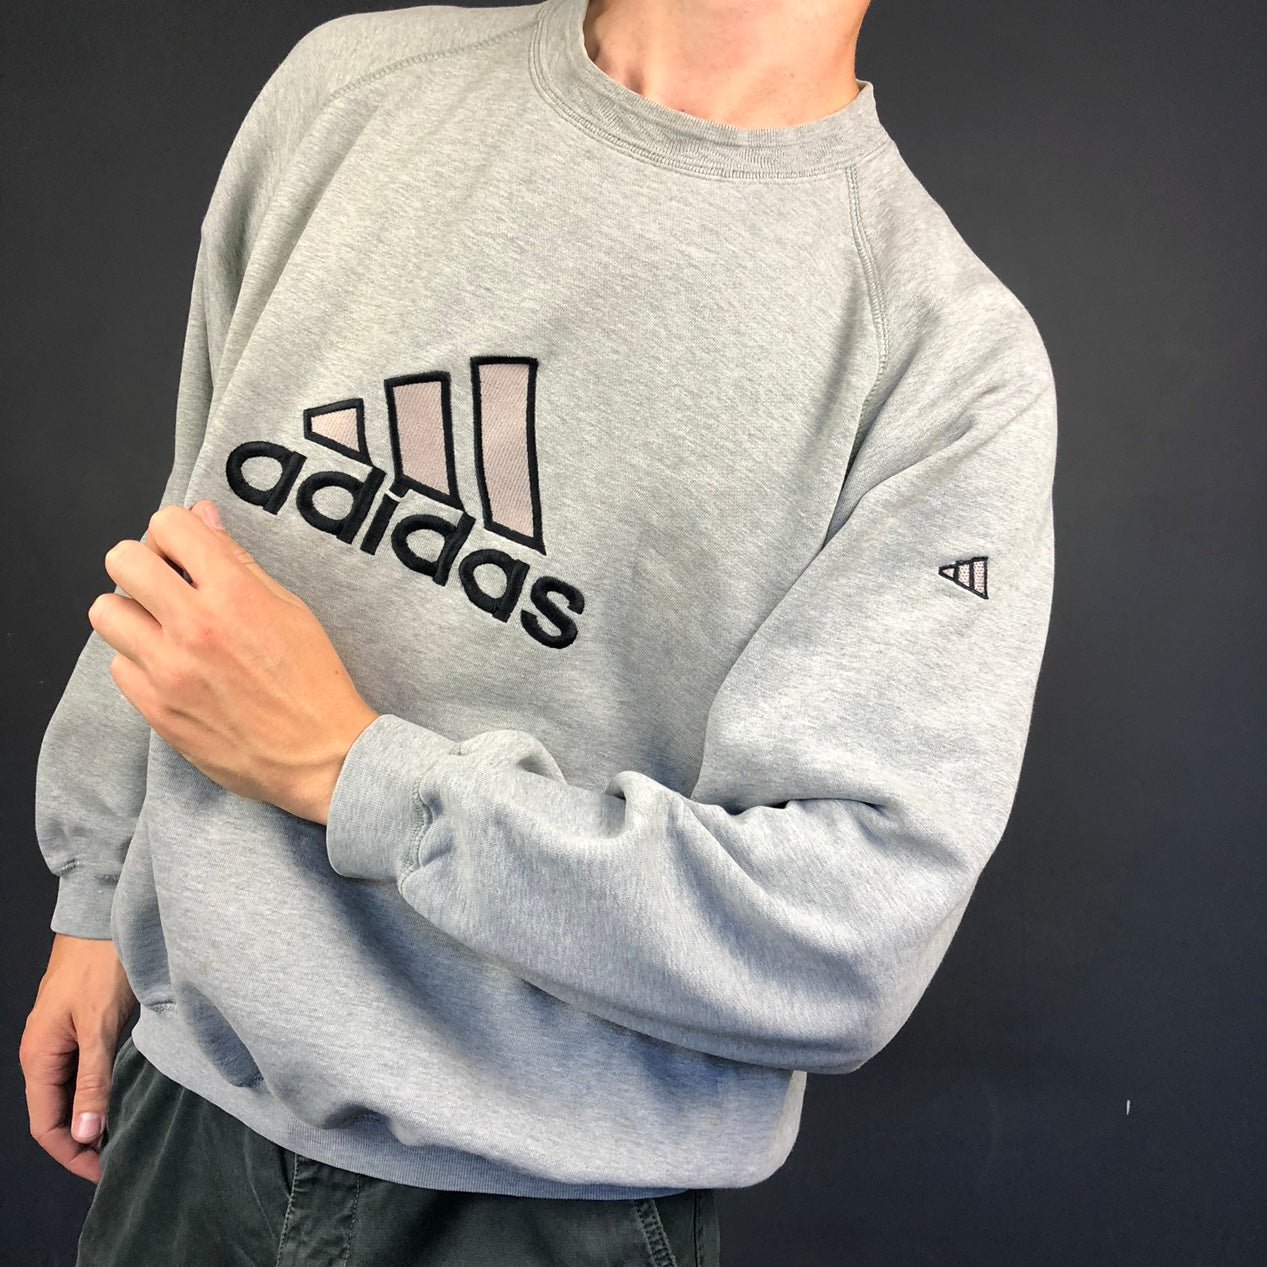 Vintage Adidas Spellout Sweatshirt with Embroidered Spellout - Large/XL